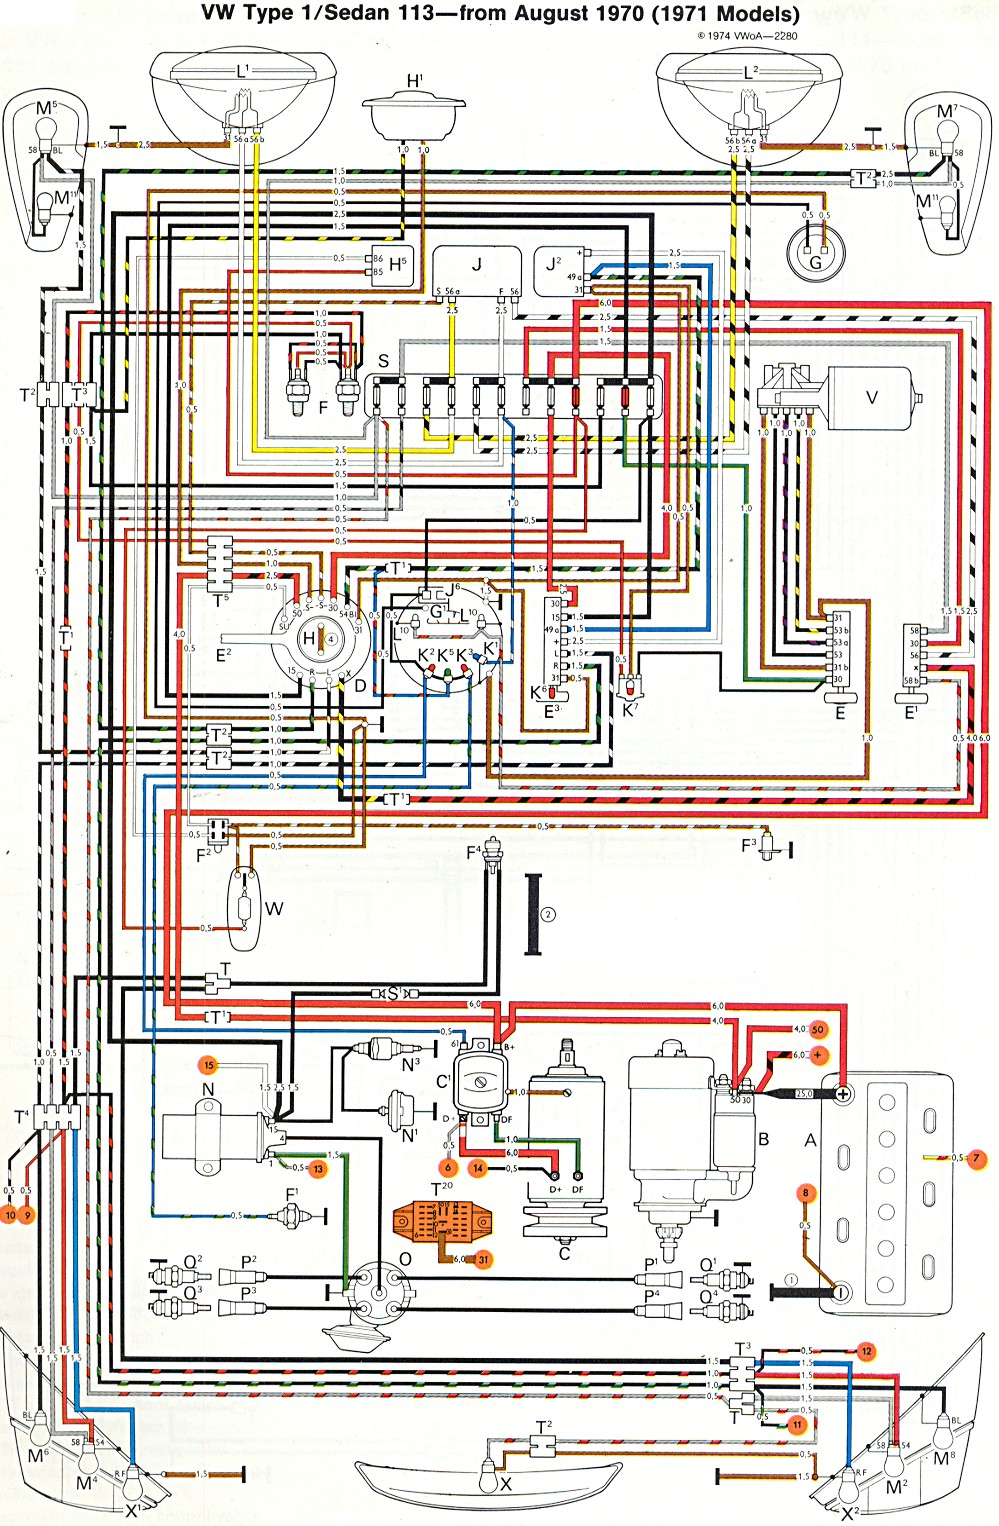 2008 vw beetle wiring diagram 2008 vw beetle fuse diagram